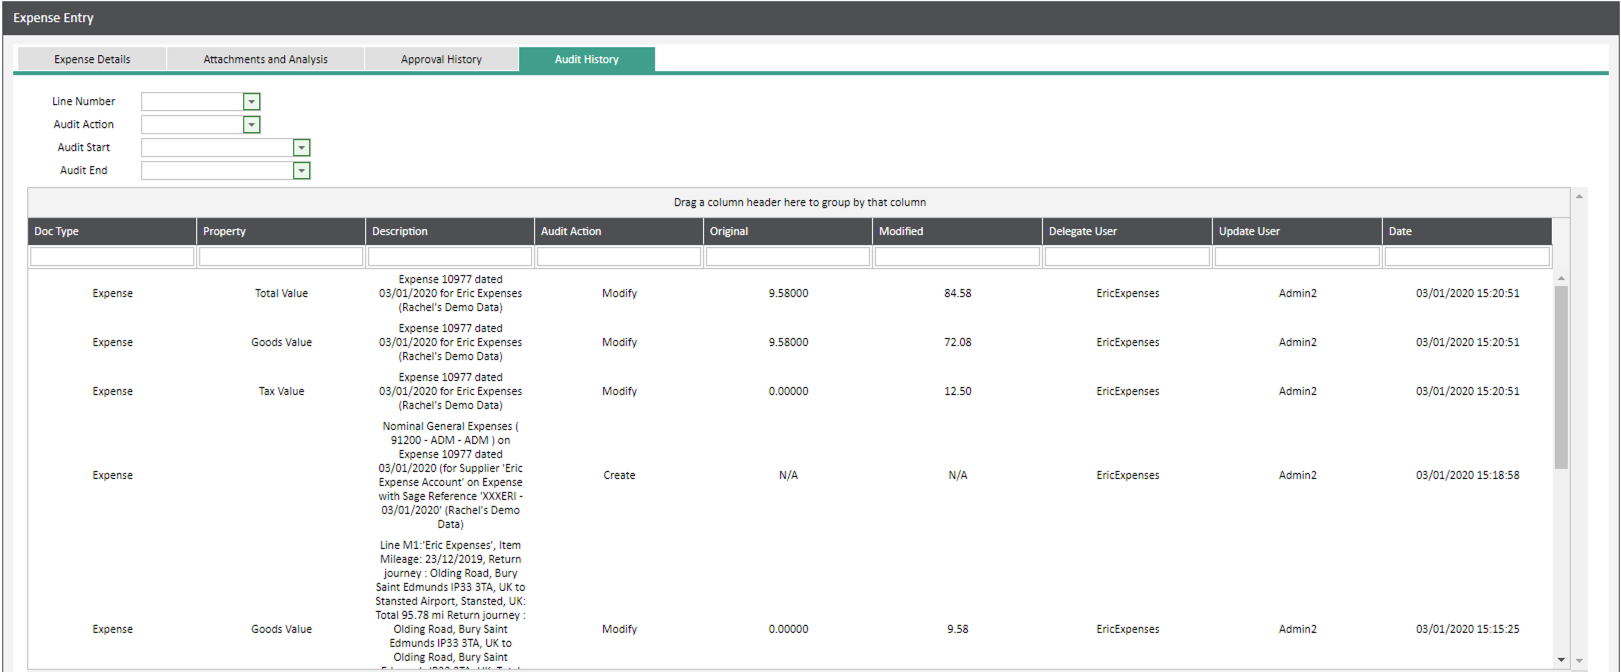 Sicon WAP Expenses Help and User Guide -Expenses HUG Section 6.3 Image 5